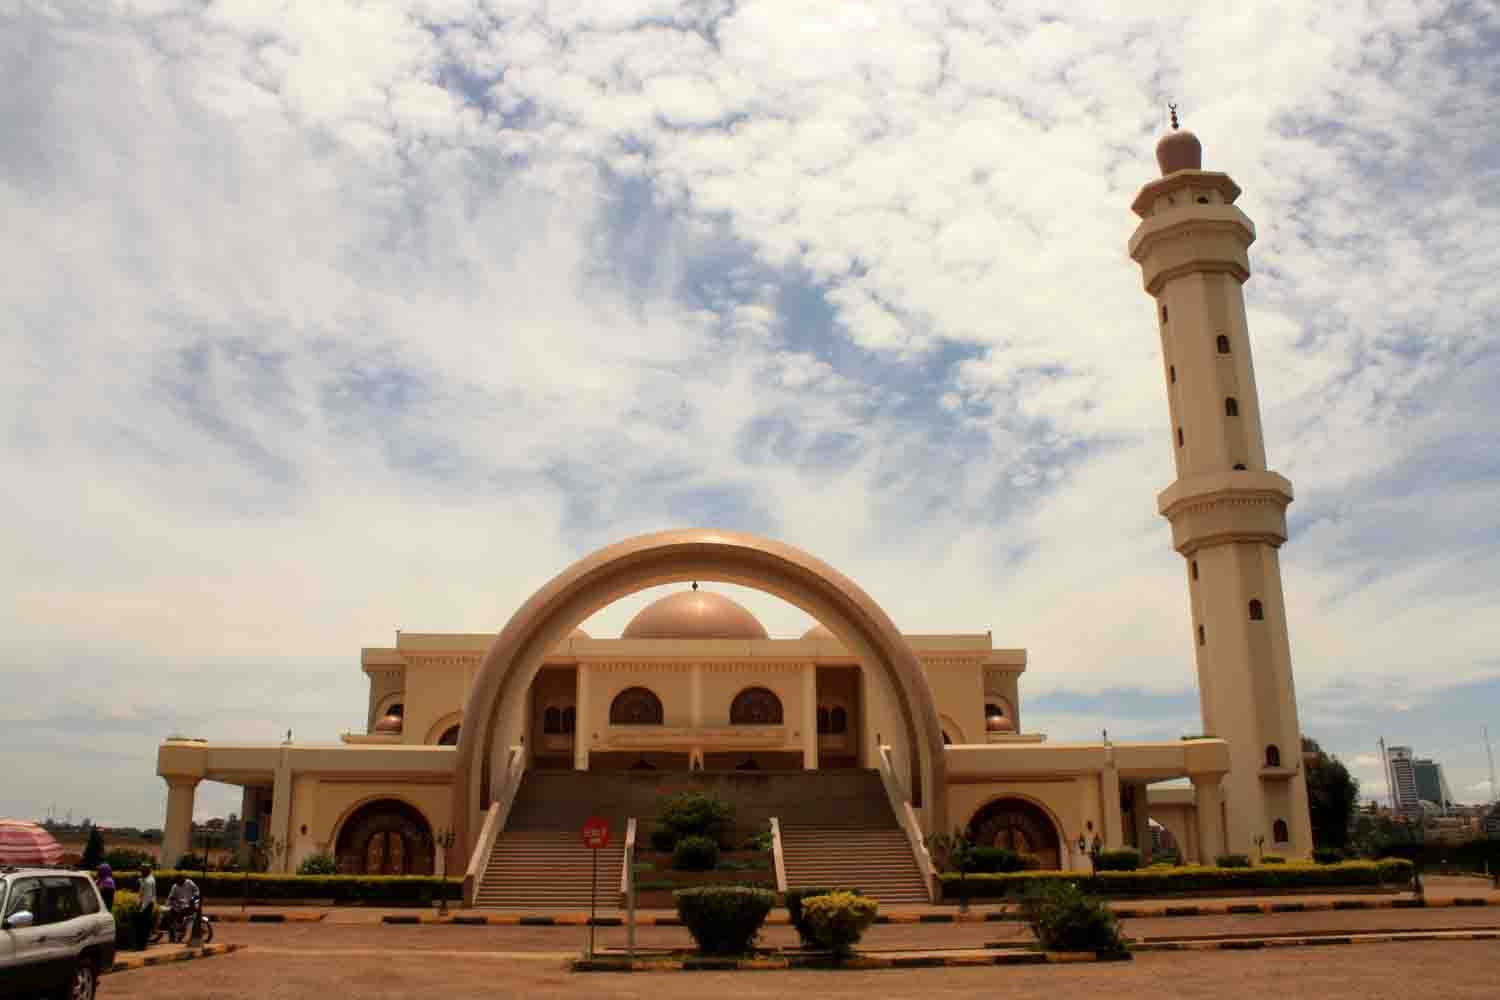 Gaddafi national mosque - Free Walking Tour in Kampala Uganda | Ummi Goes Where?